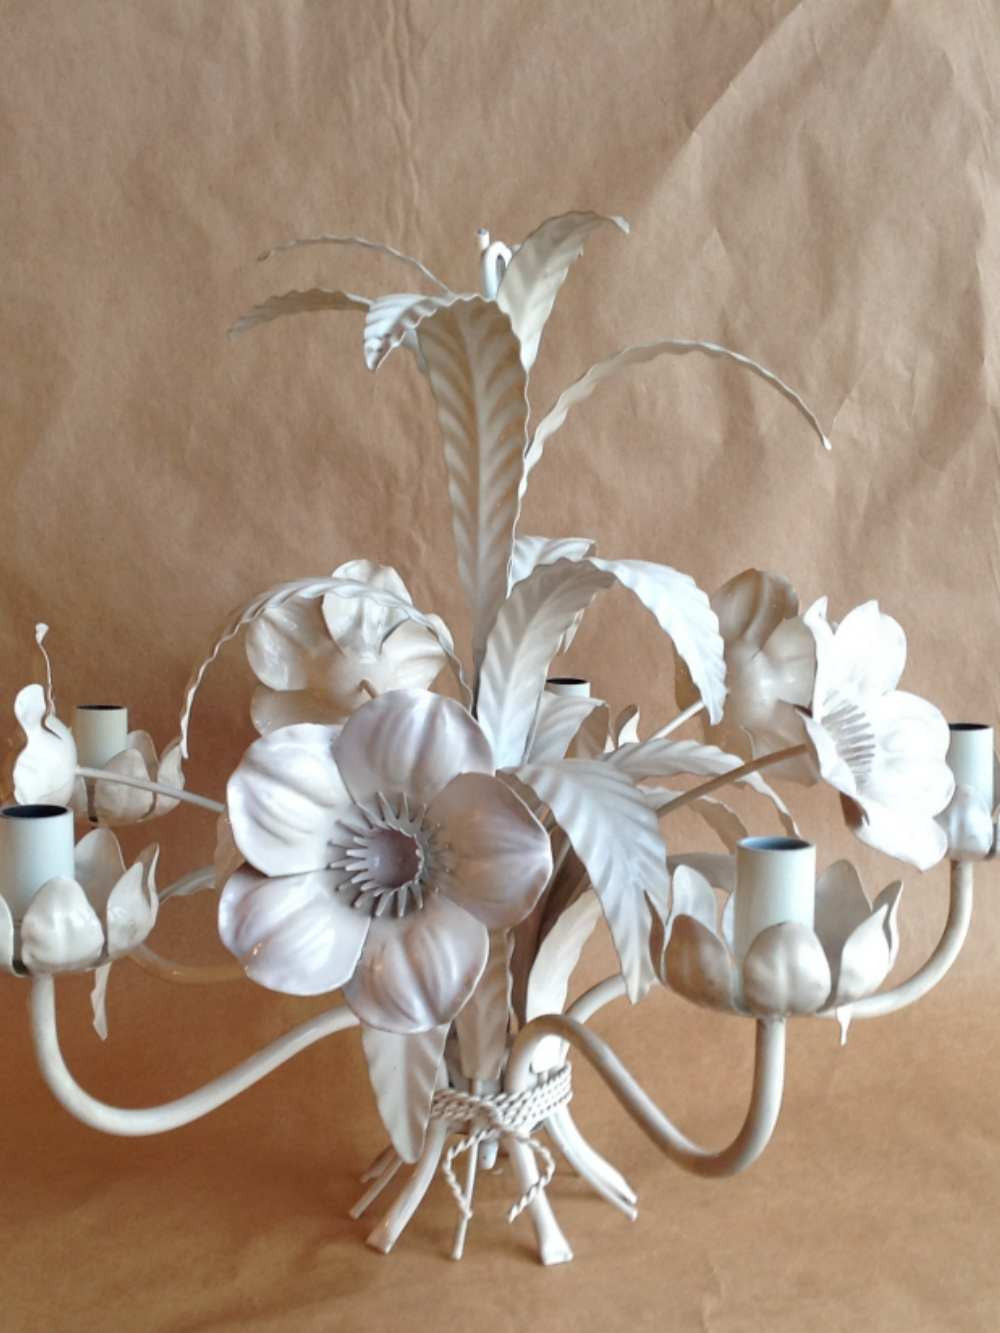 Vintage tole chandelier lavender and white vintage tole chandelier lavender and white mercato antiques 1 mozeypictures Image collections